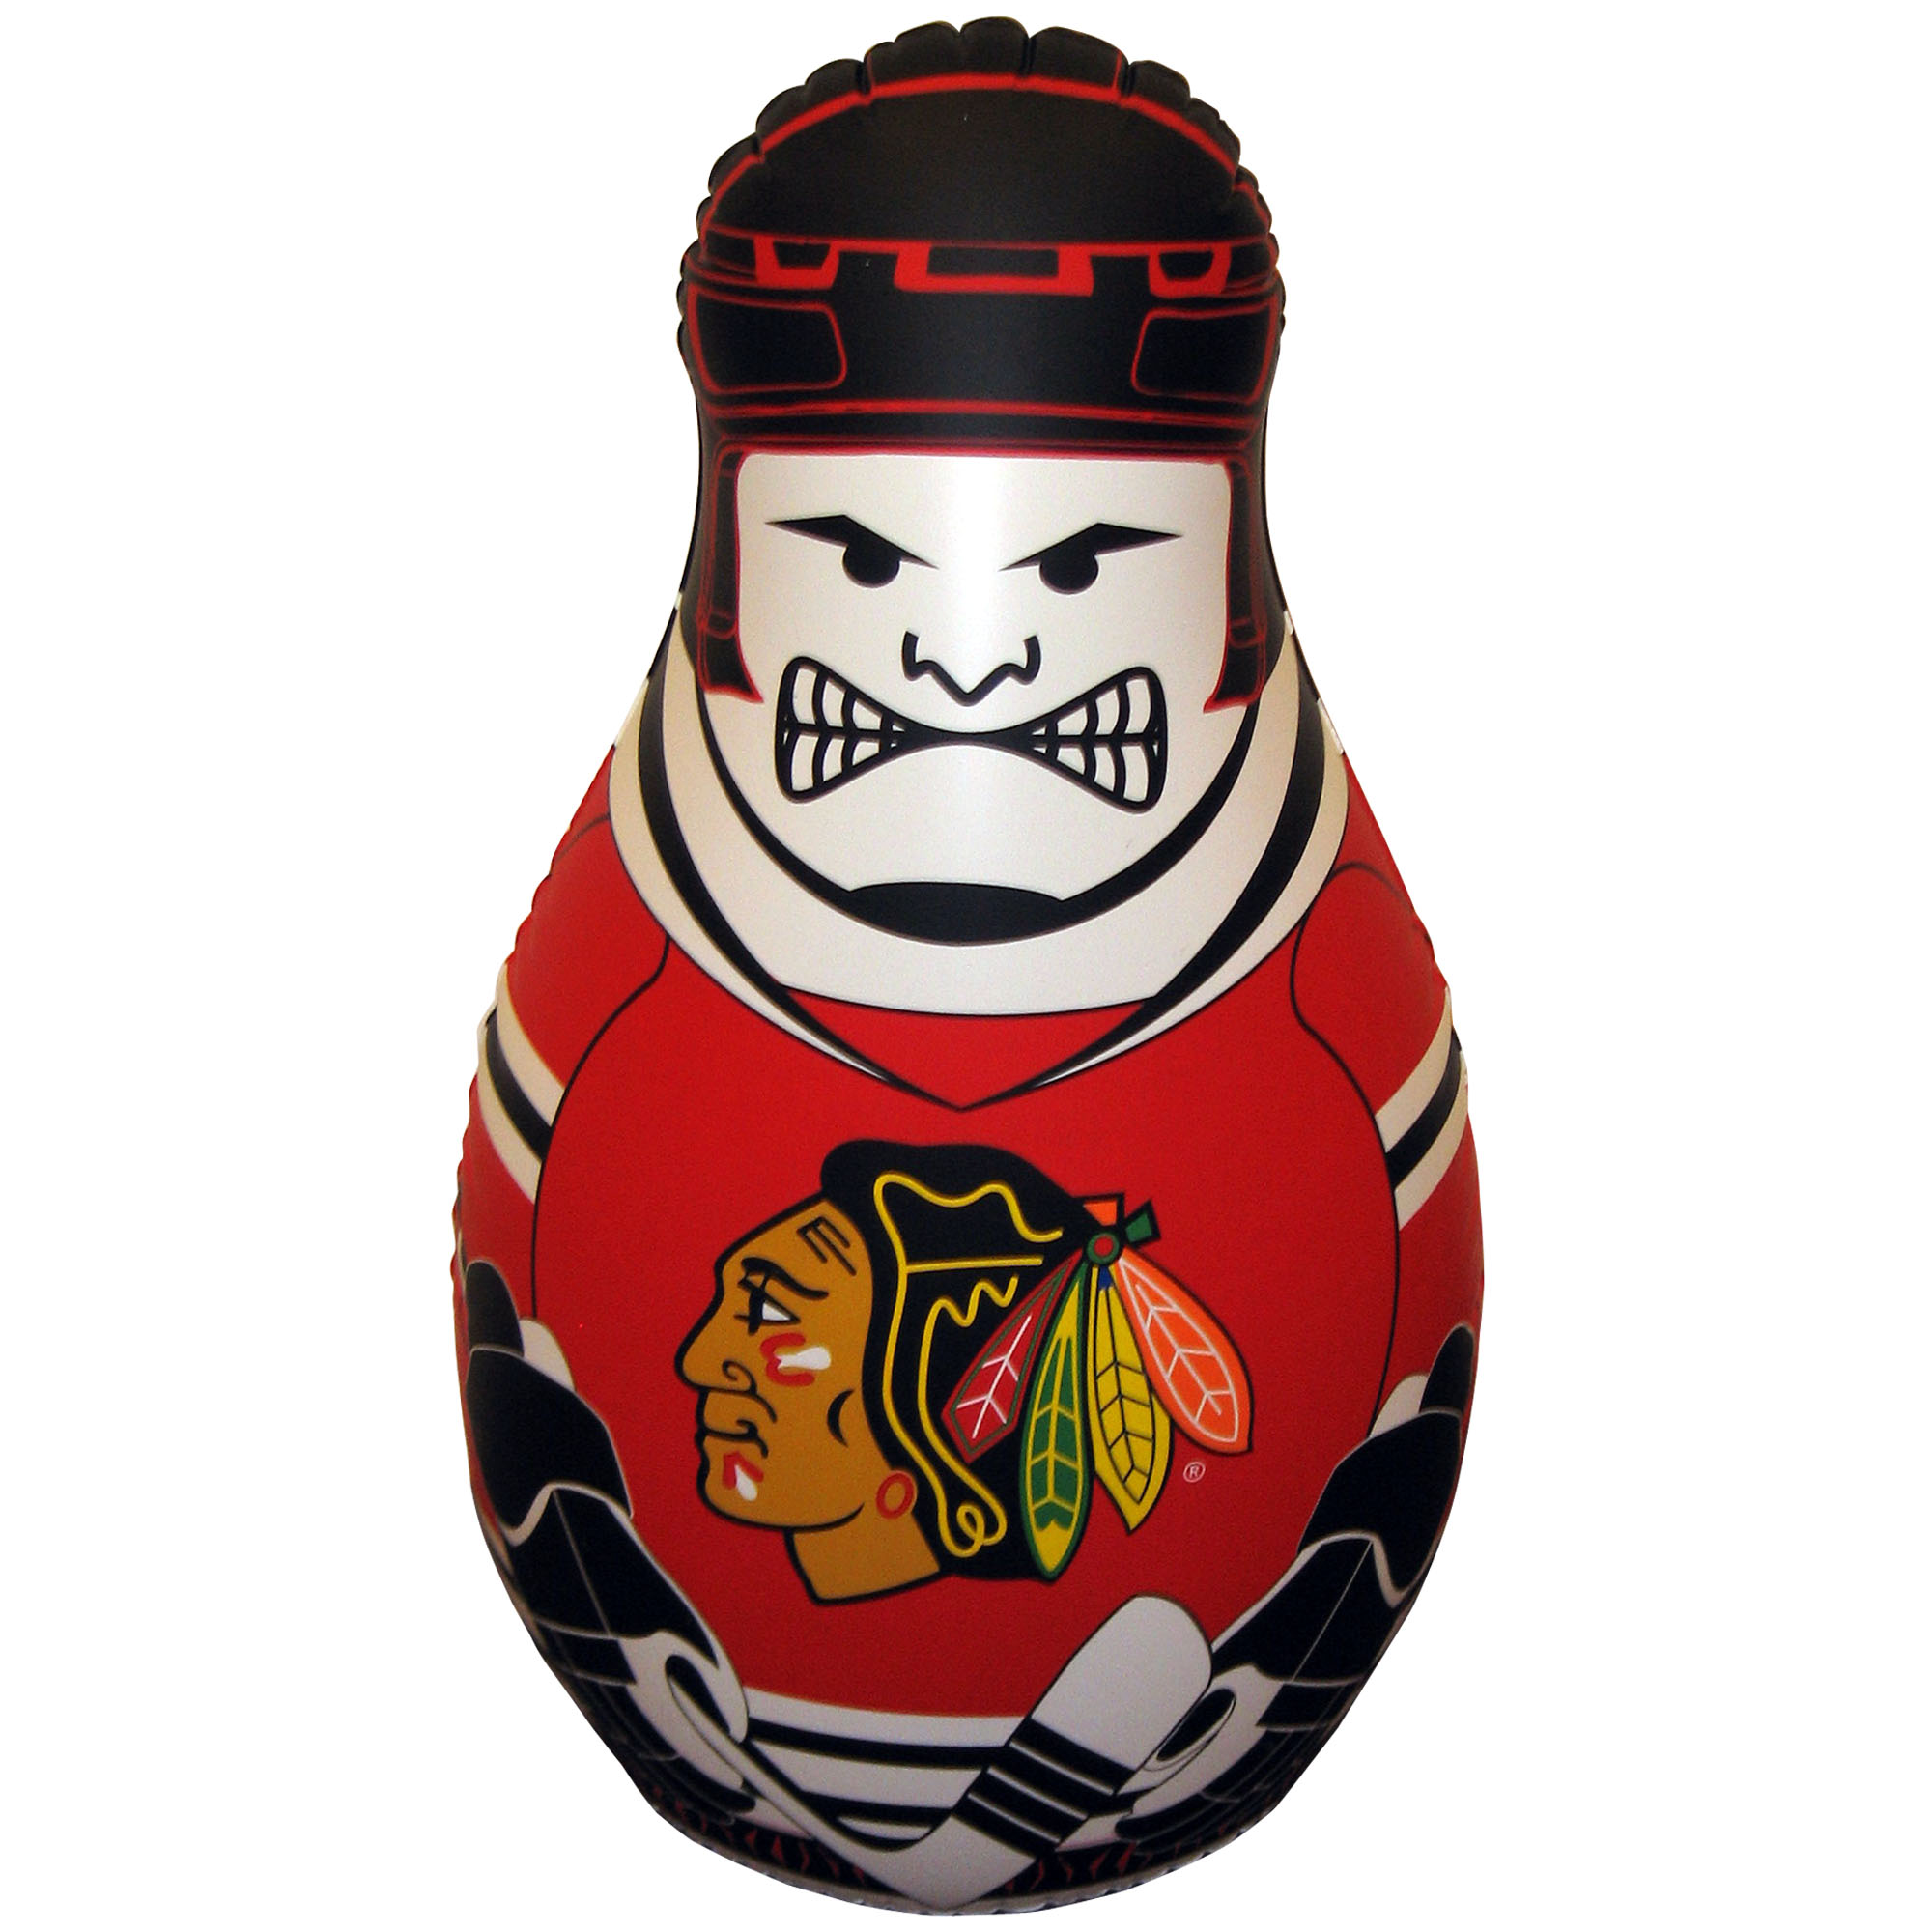 NHL Chicago Blackhawks Checking Buddy